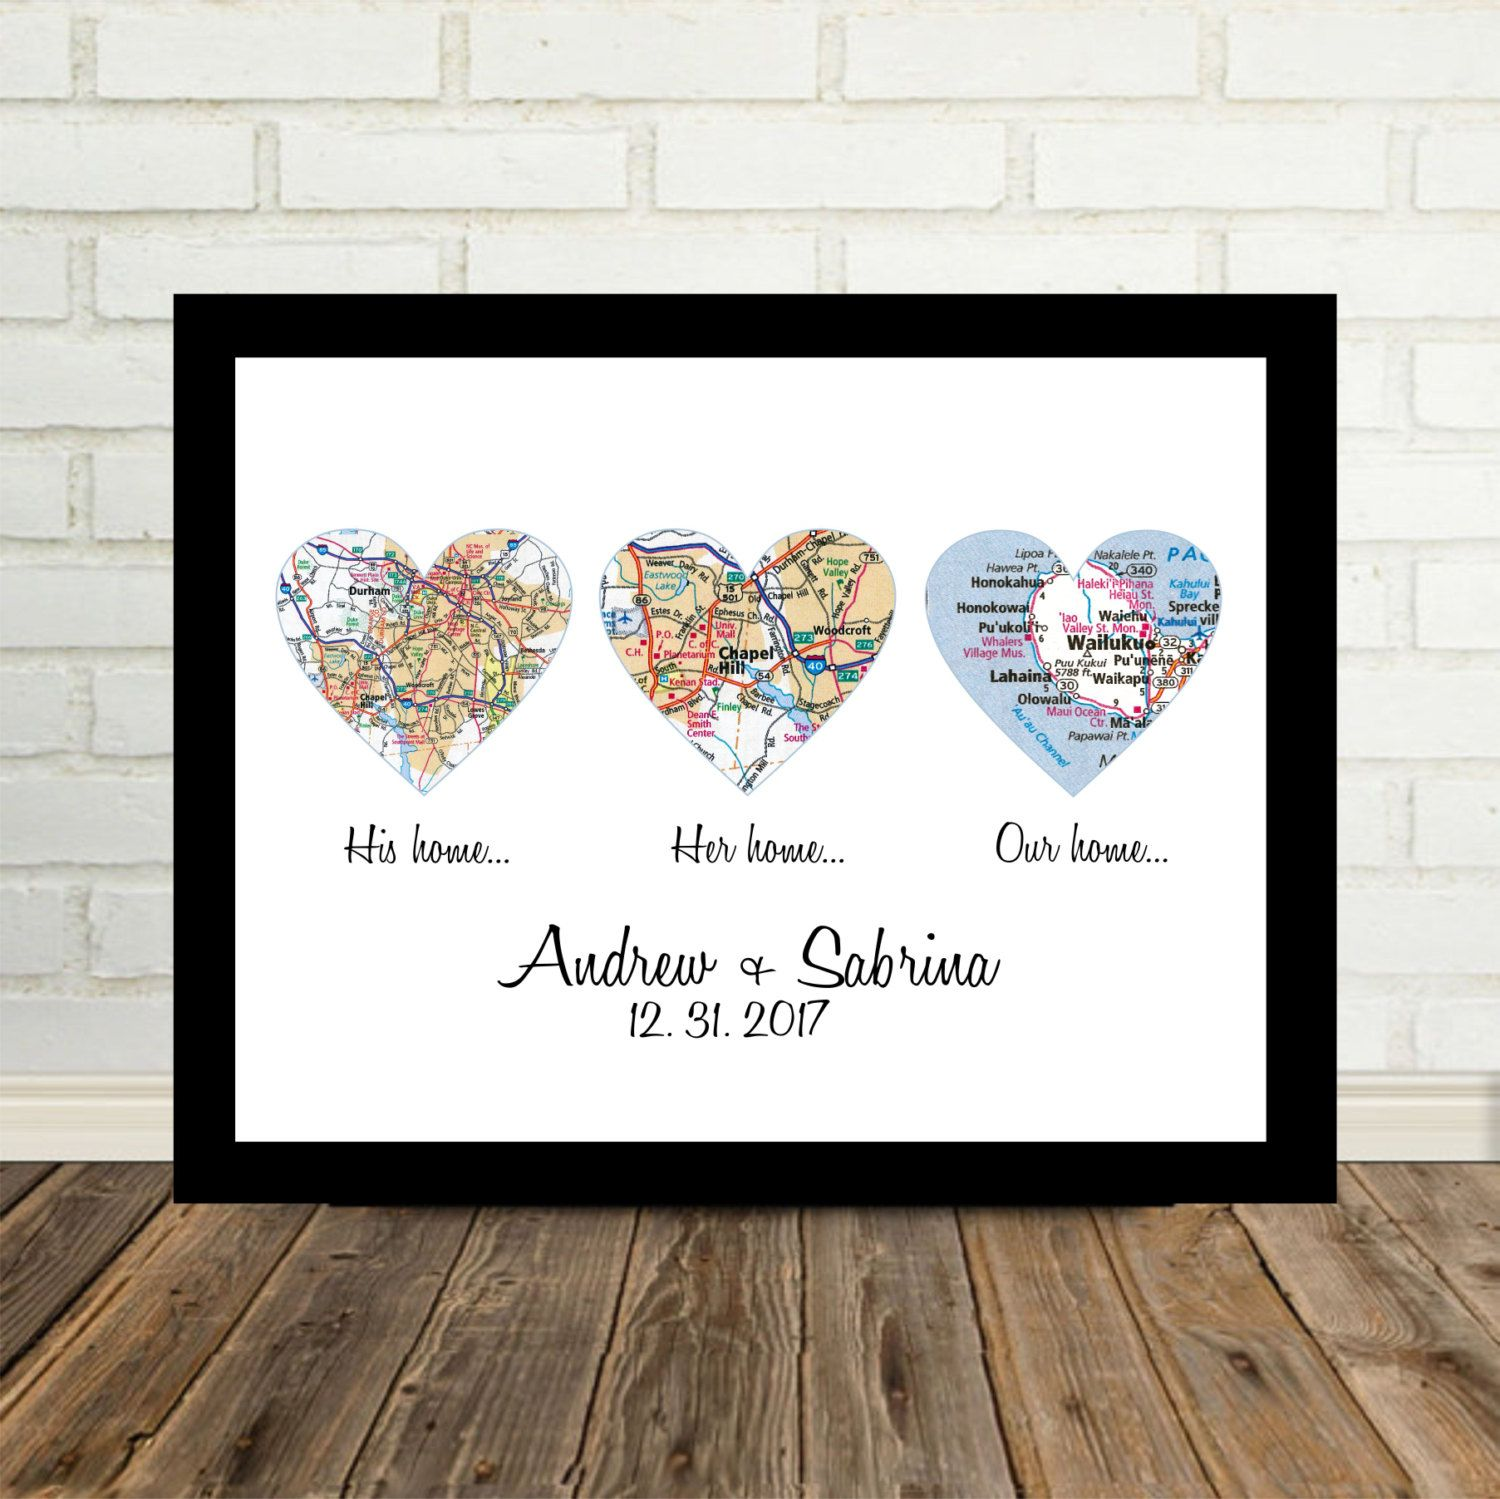 Wedding Gift Framed Art Heart Map Personalized Wedding Gift for Couple Unique Wedding Gift Ideas Map Art Gift Valentine Gift for Her #personalizedwedding